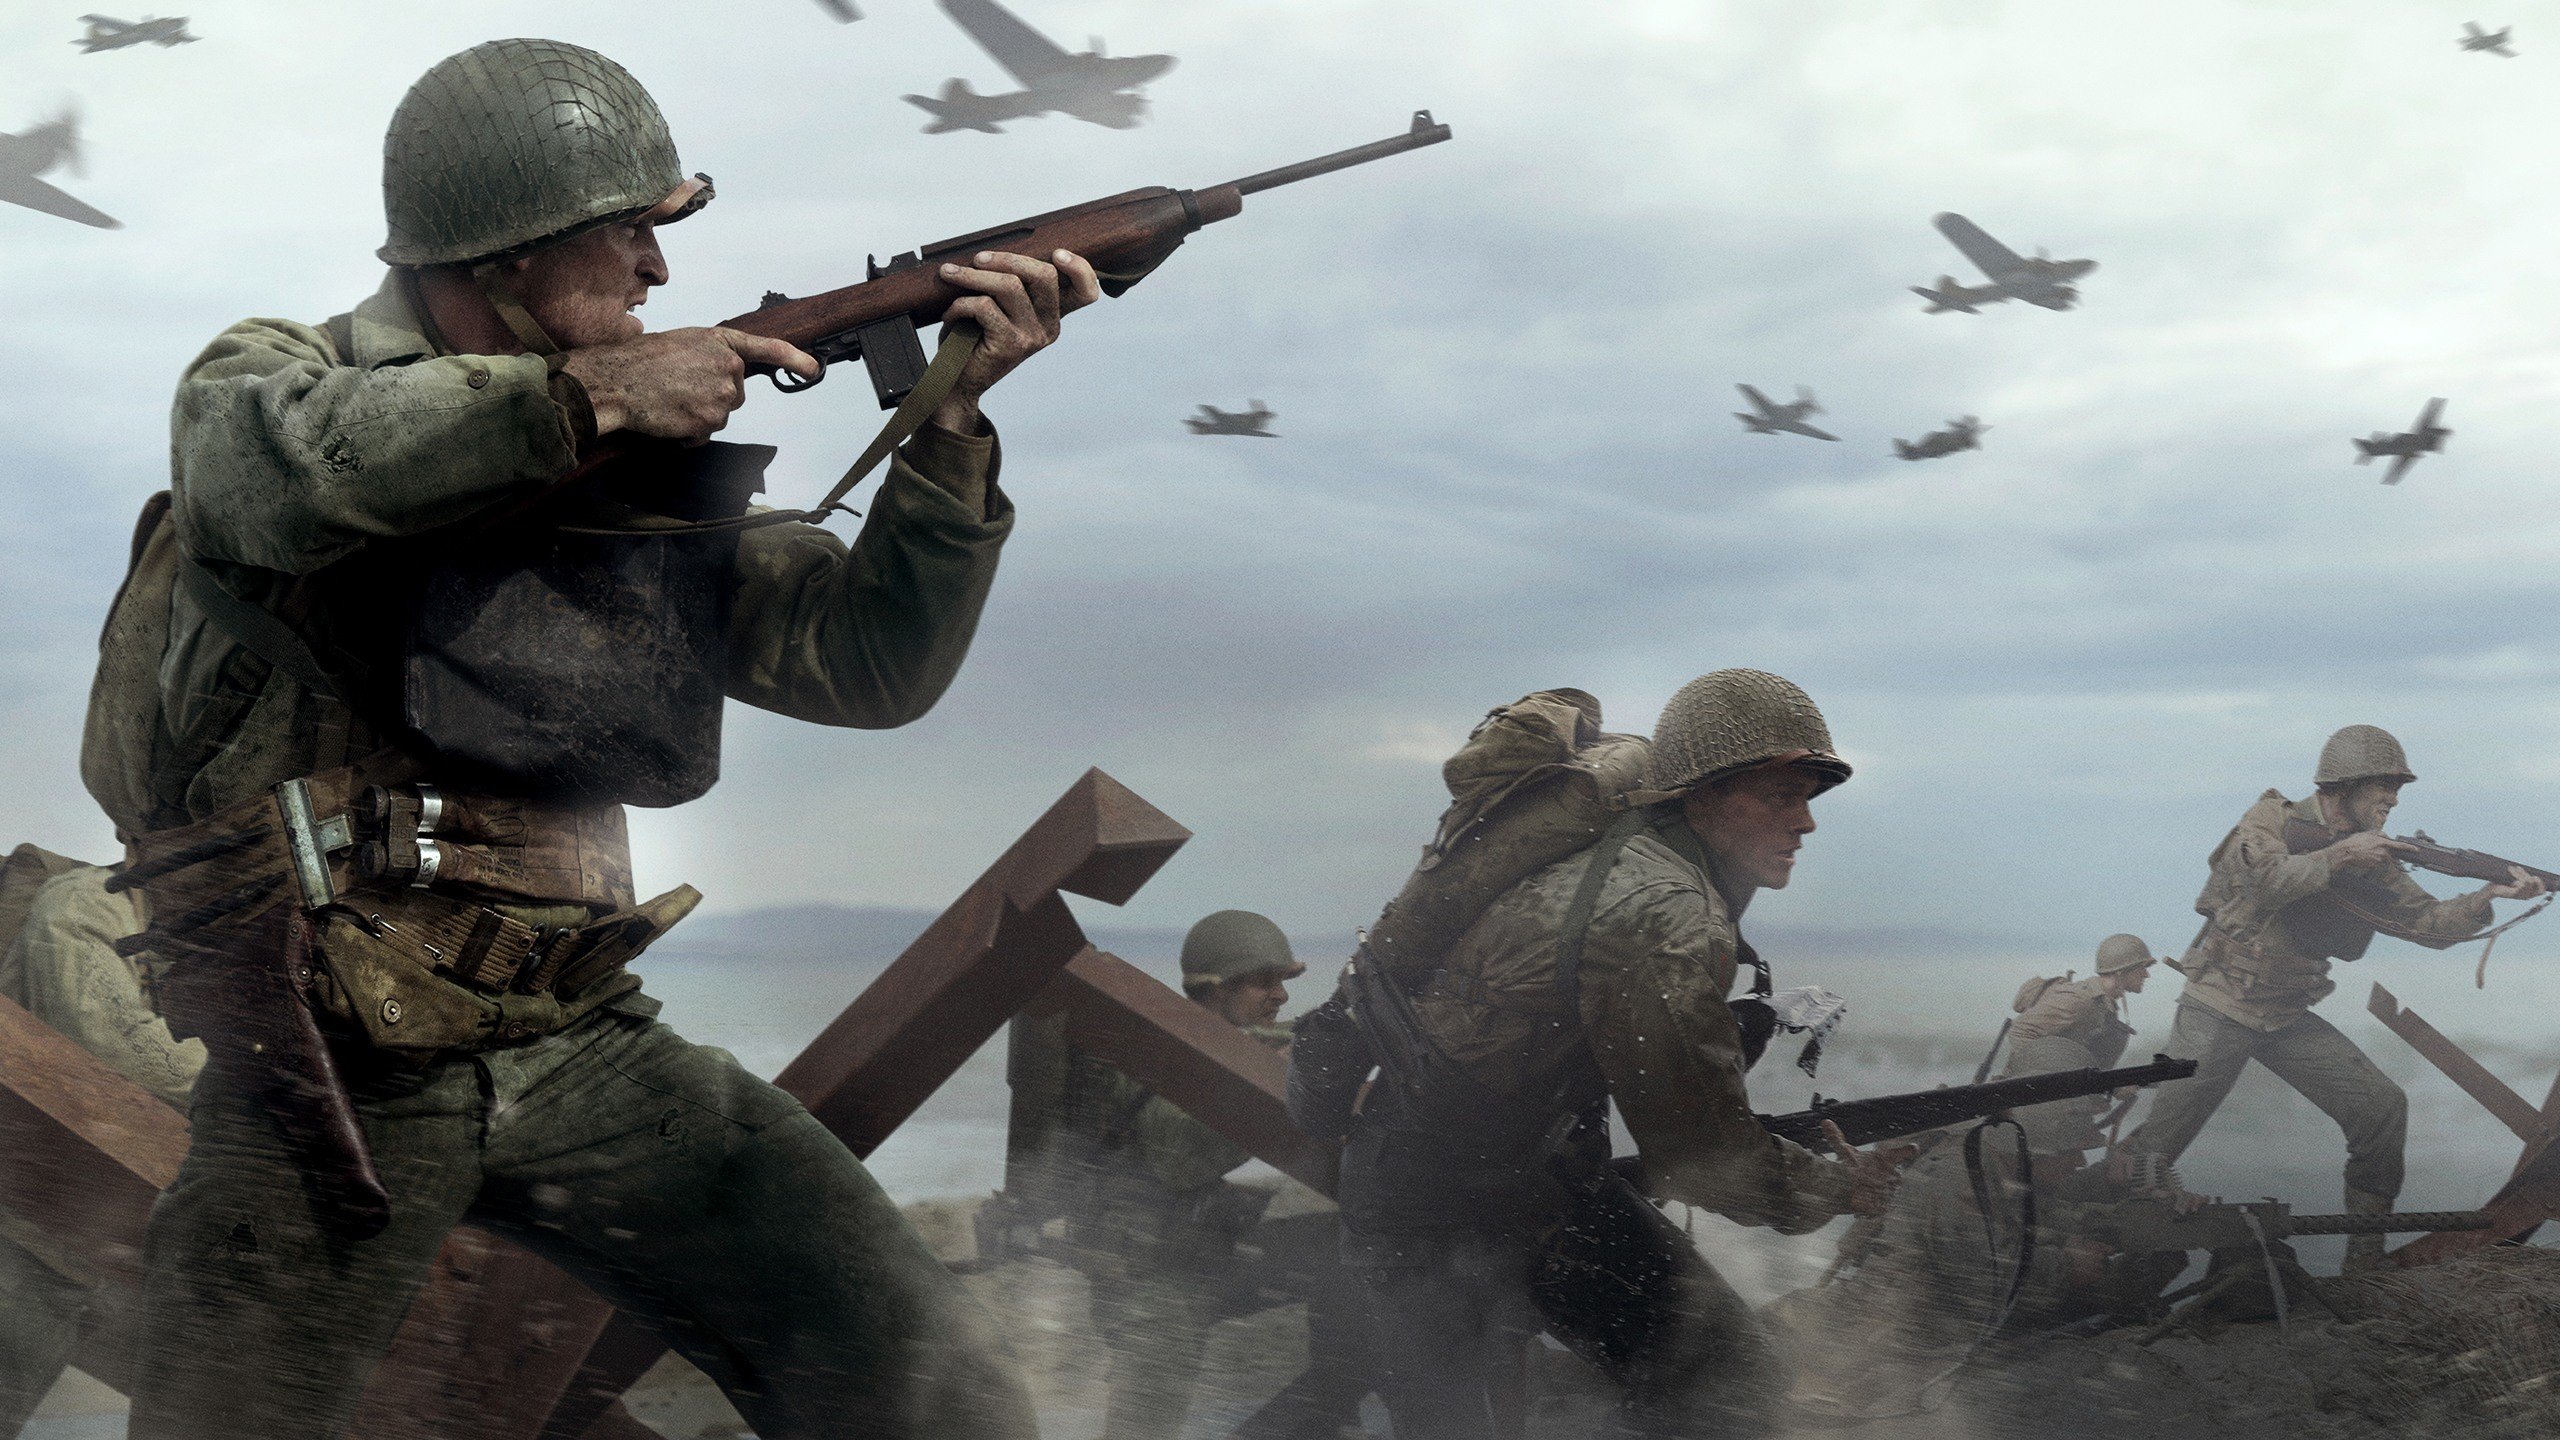 2560x1440 Awesome Call of Duty: WWII Soldiers in War wallpaper